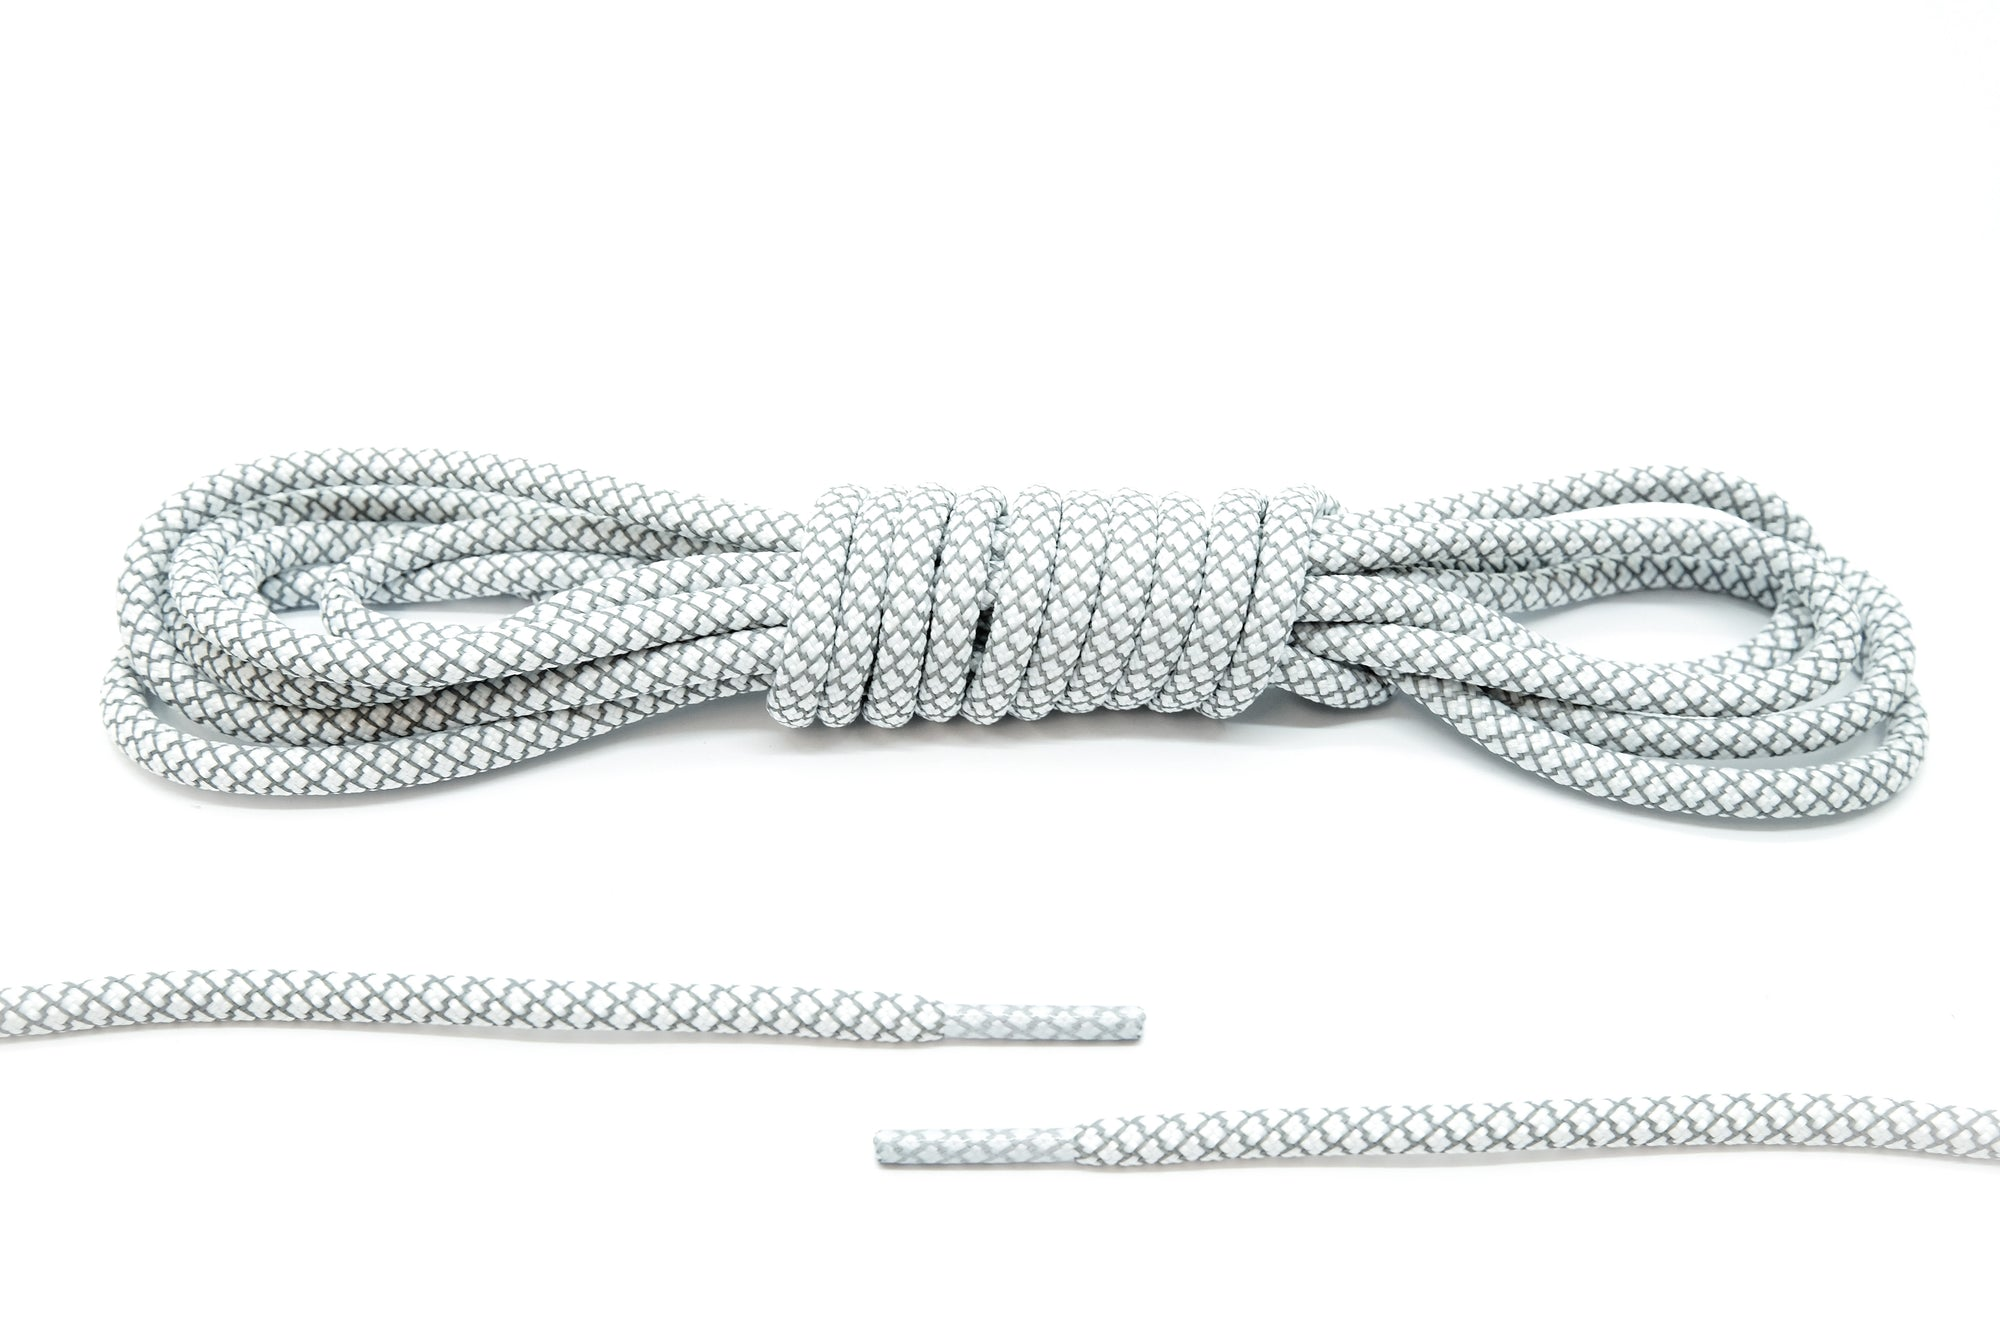 White Rope Laces (Reflective) - Belaced